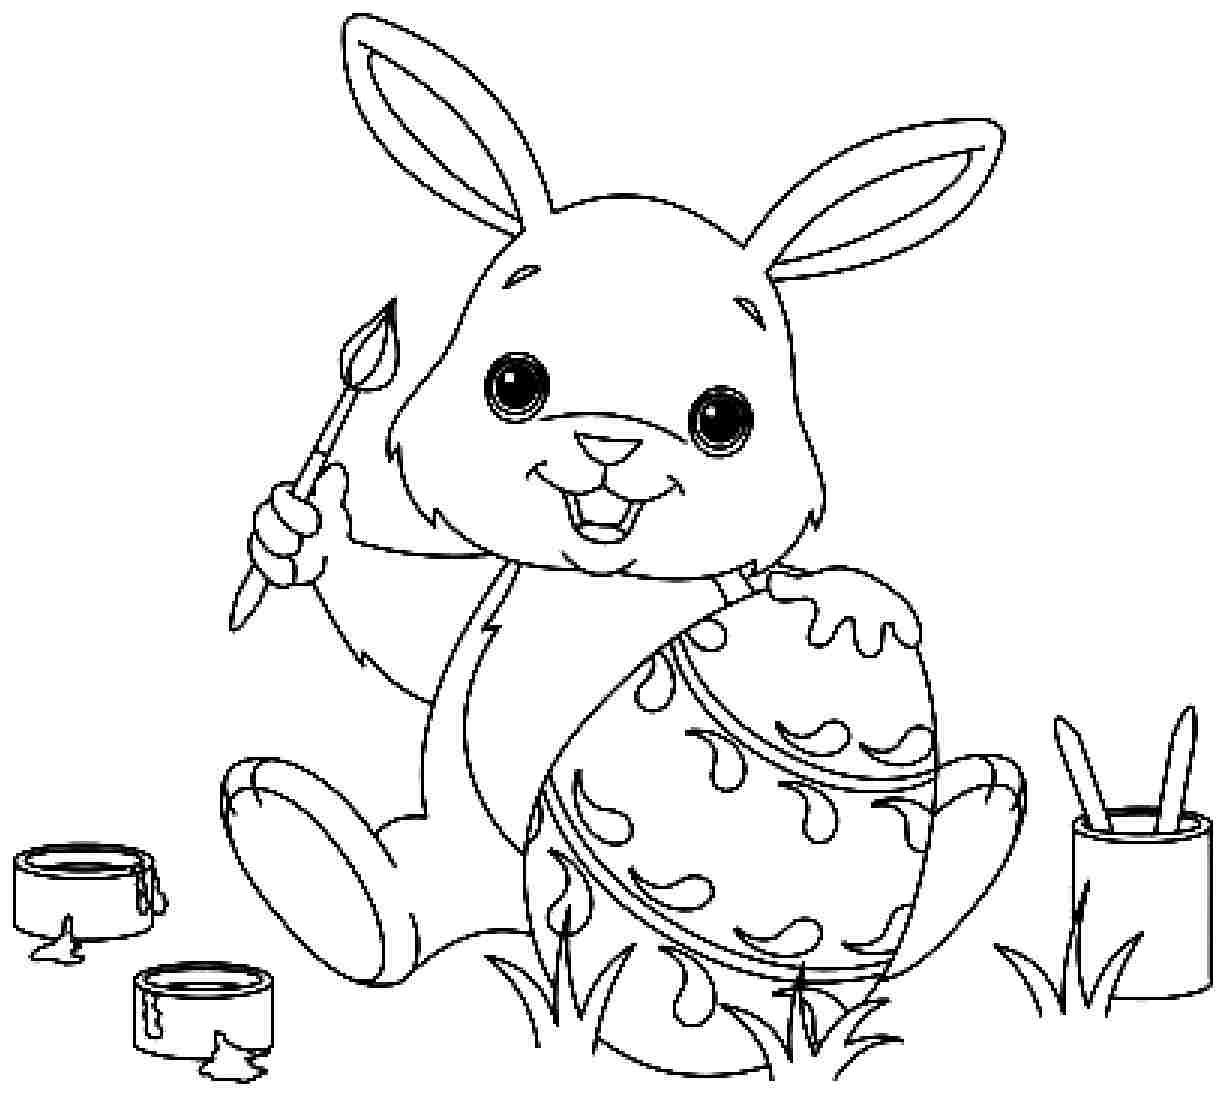 bunny picture to color rabbit to download for free rabbit kids coloring pages color bunny picture to